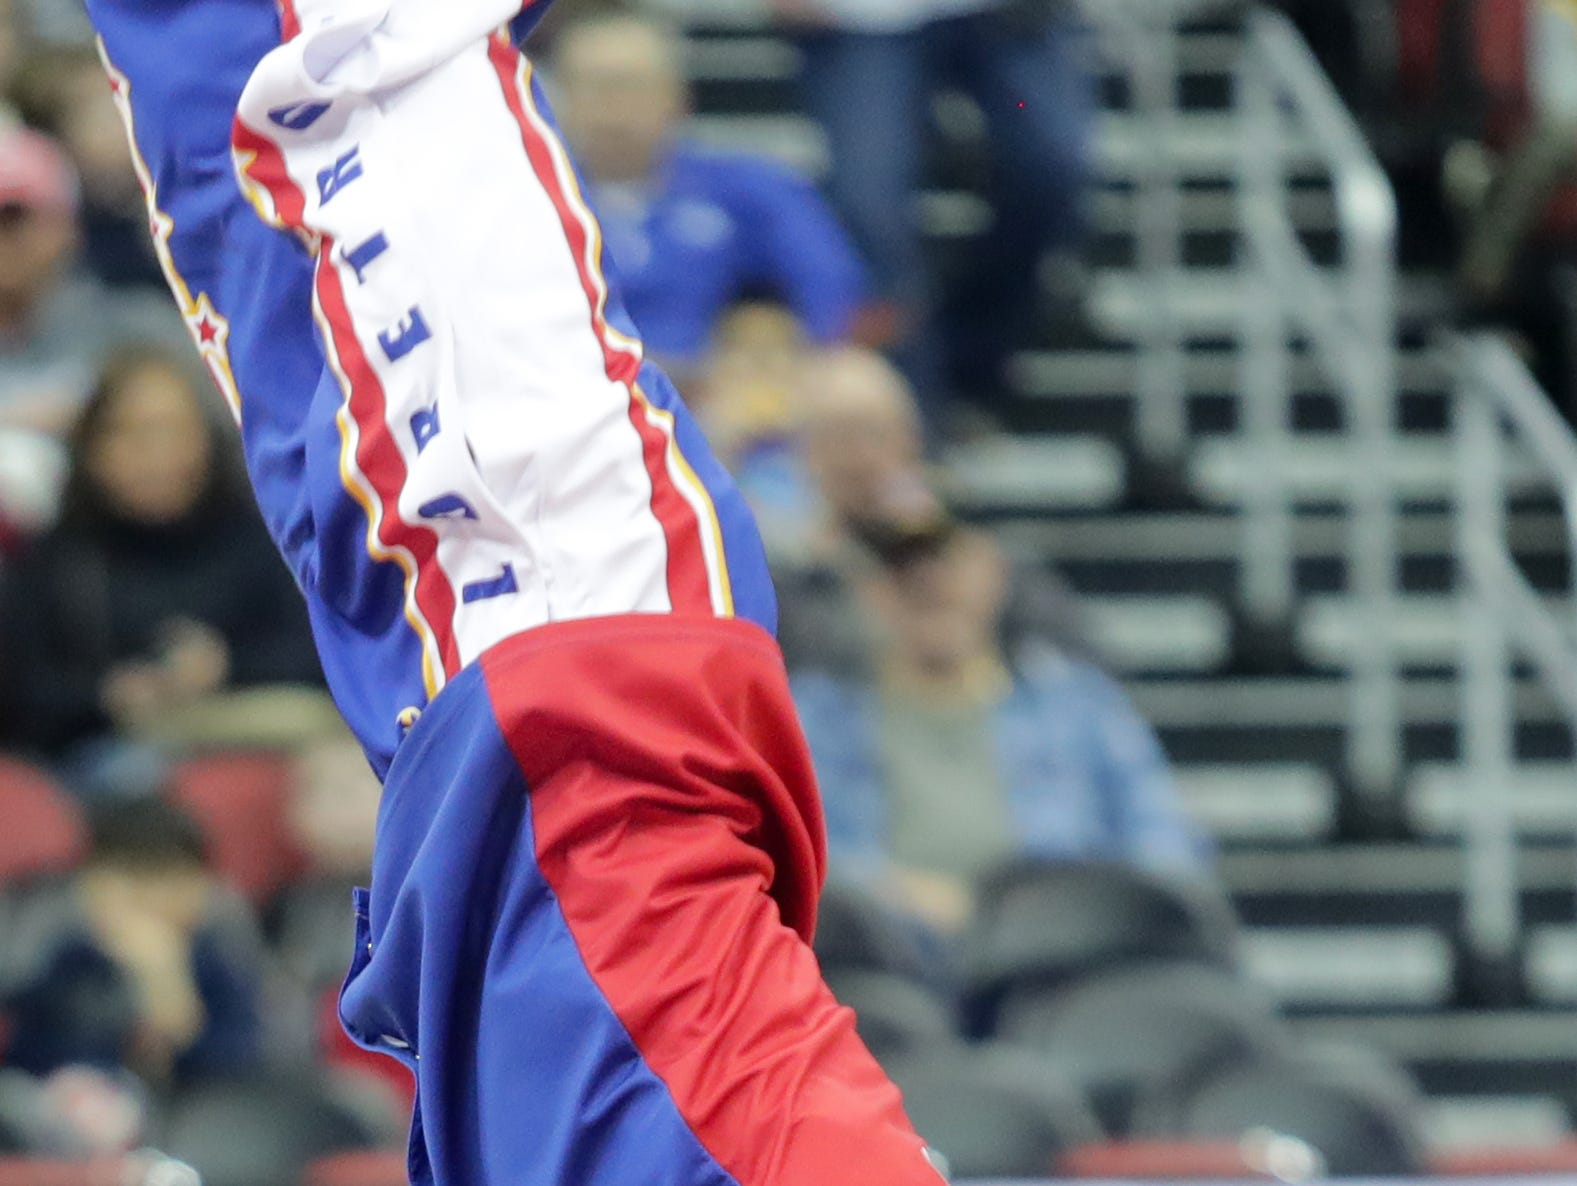 Harlem Globetrotters' Wham entertains the crowd with his ball control before the game.